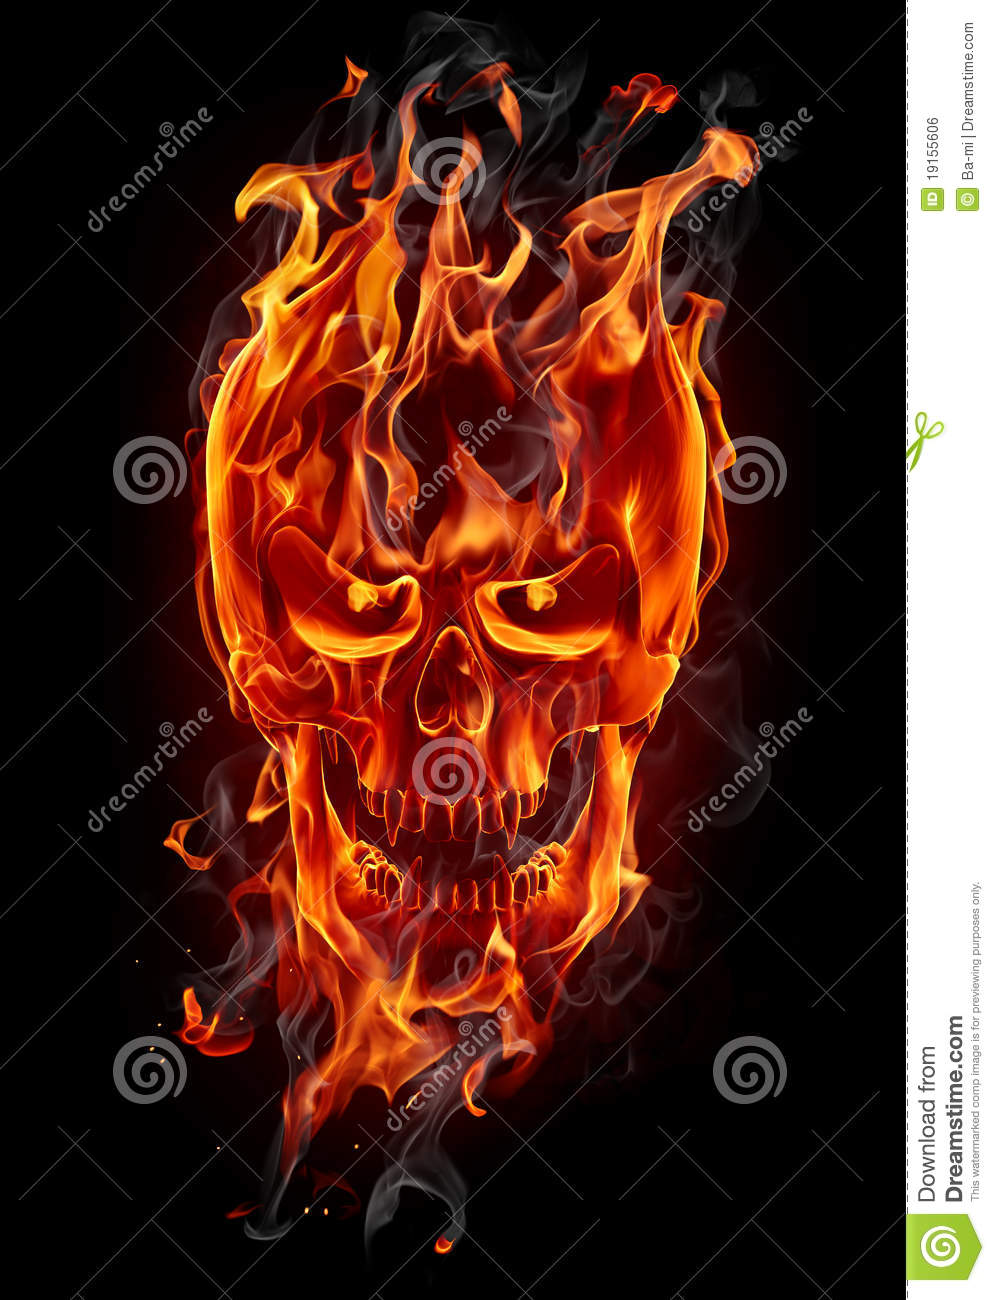 Fire Skull Royalty Free Stock Image - Image: 19155606